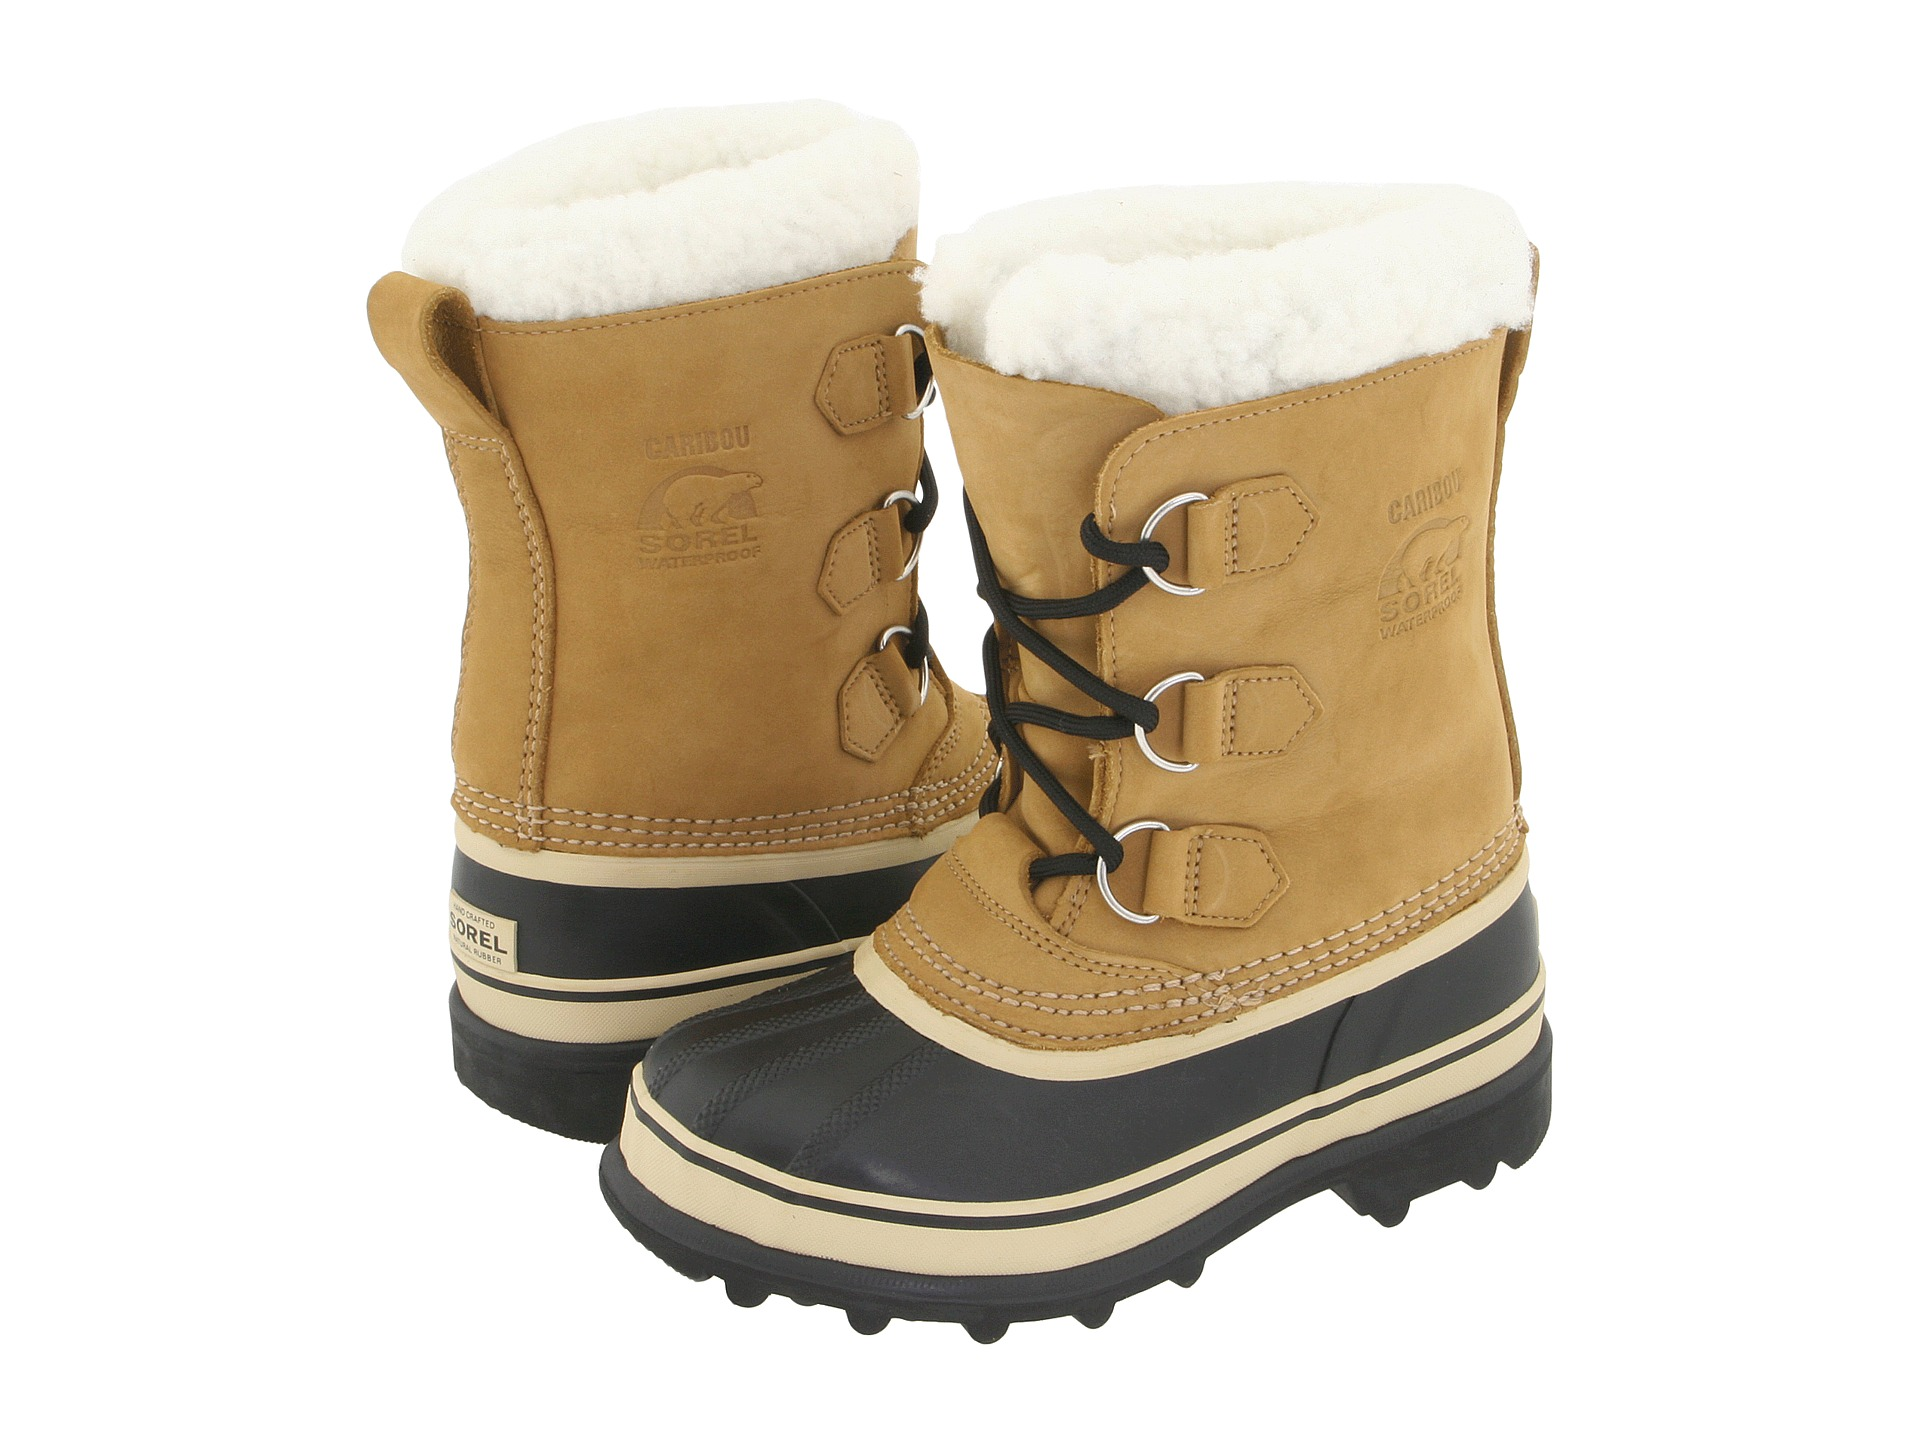 Best Snow Boots For Kids UCxz6dTM